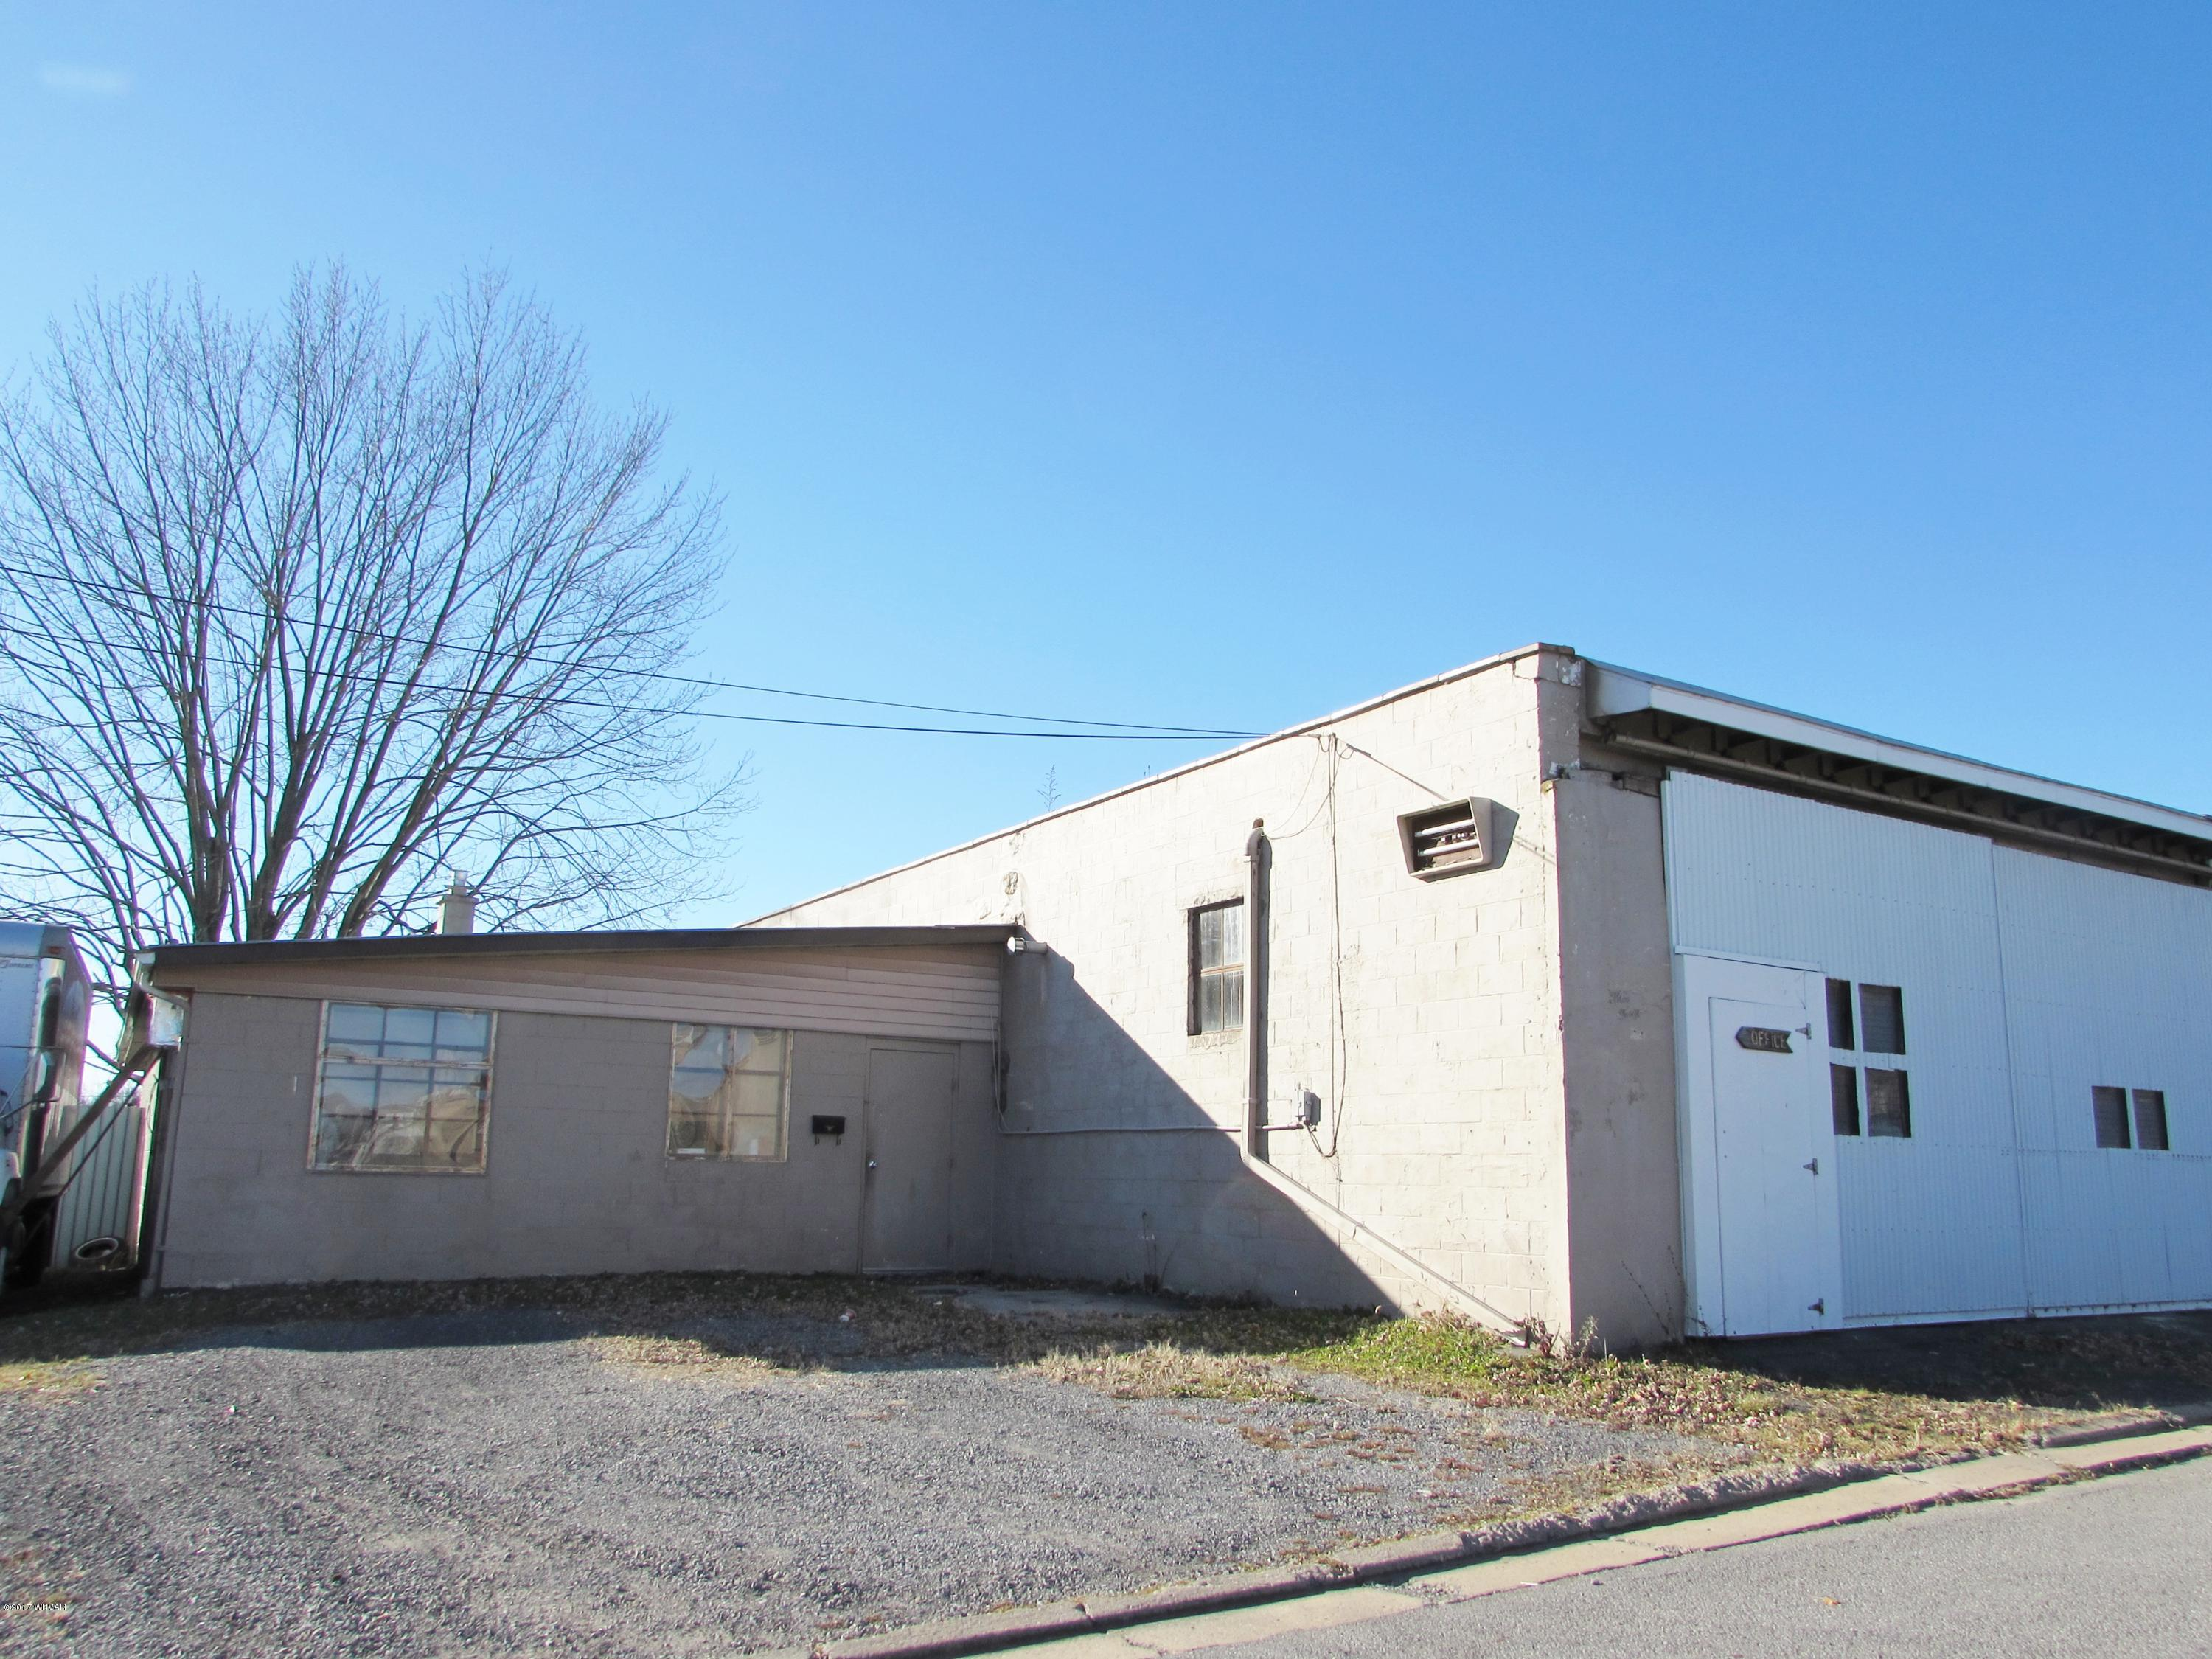 342 3RD AVENUE,Lock Haven,PA 17745,1 BathroomBathrooms,Commercial sales,3RD,WB-82671